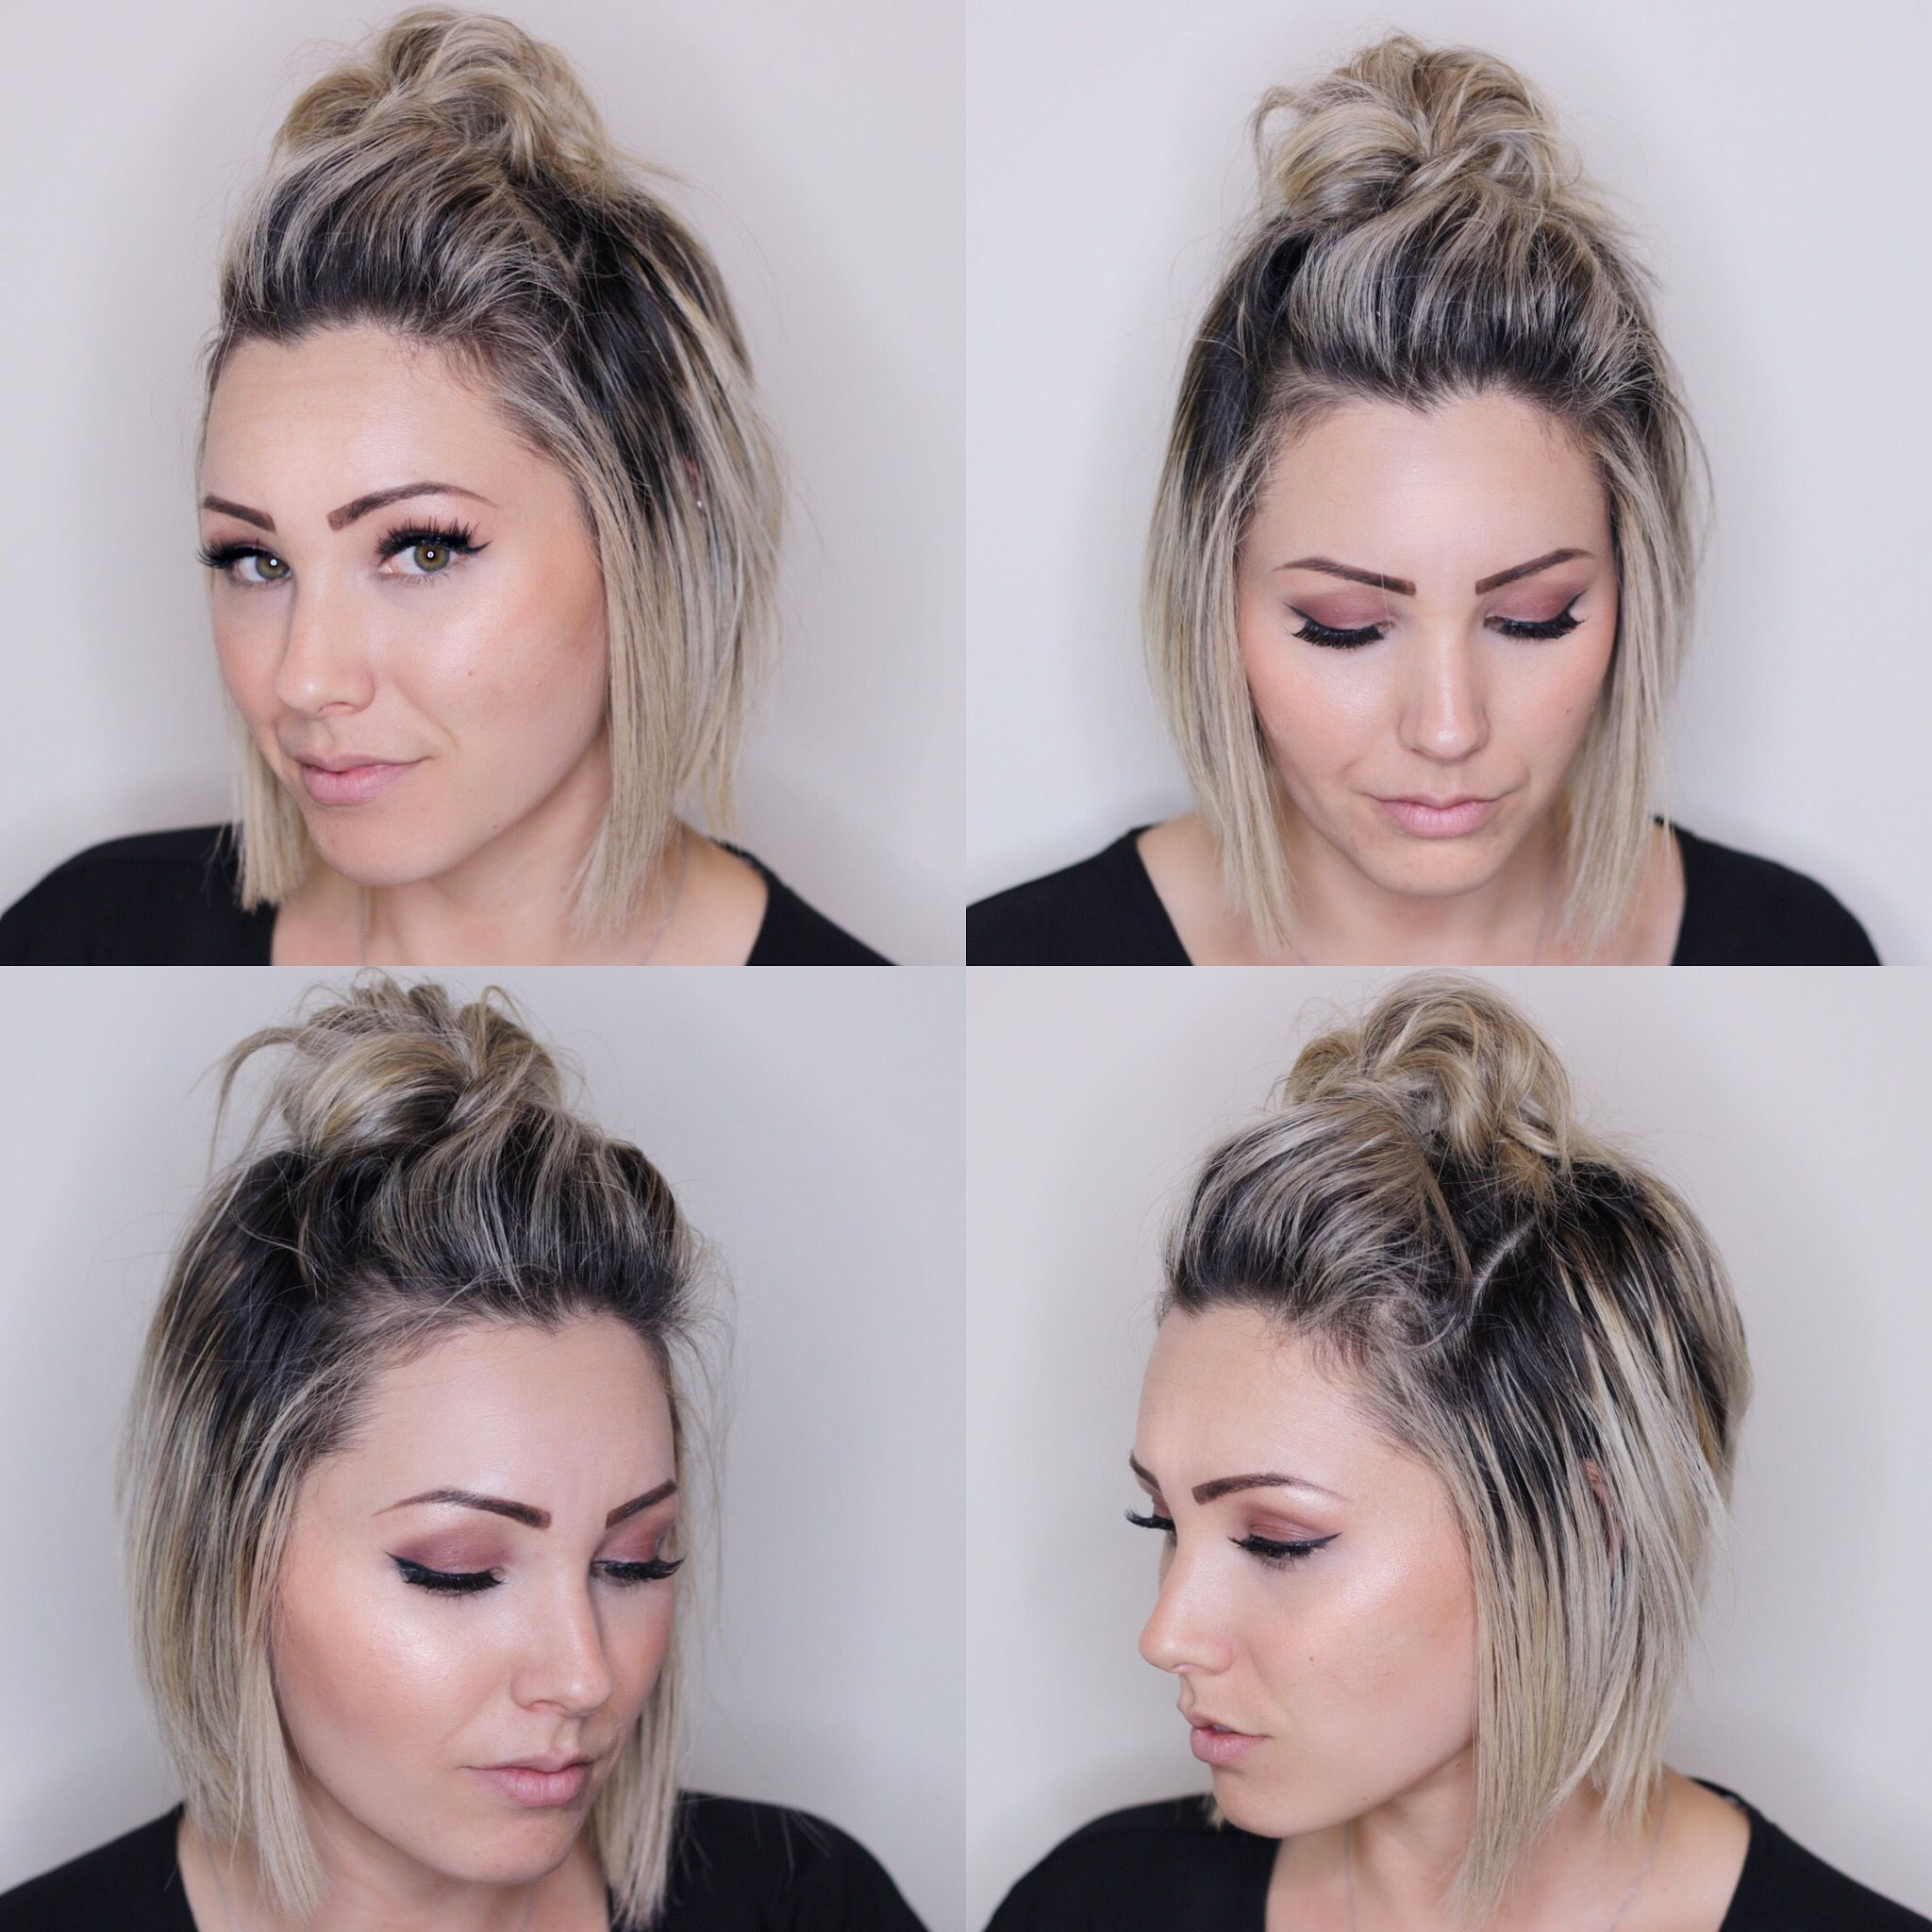 top knot for short hair. short hairstyle. soft bob haircut | How to ...